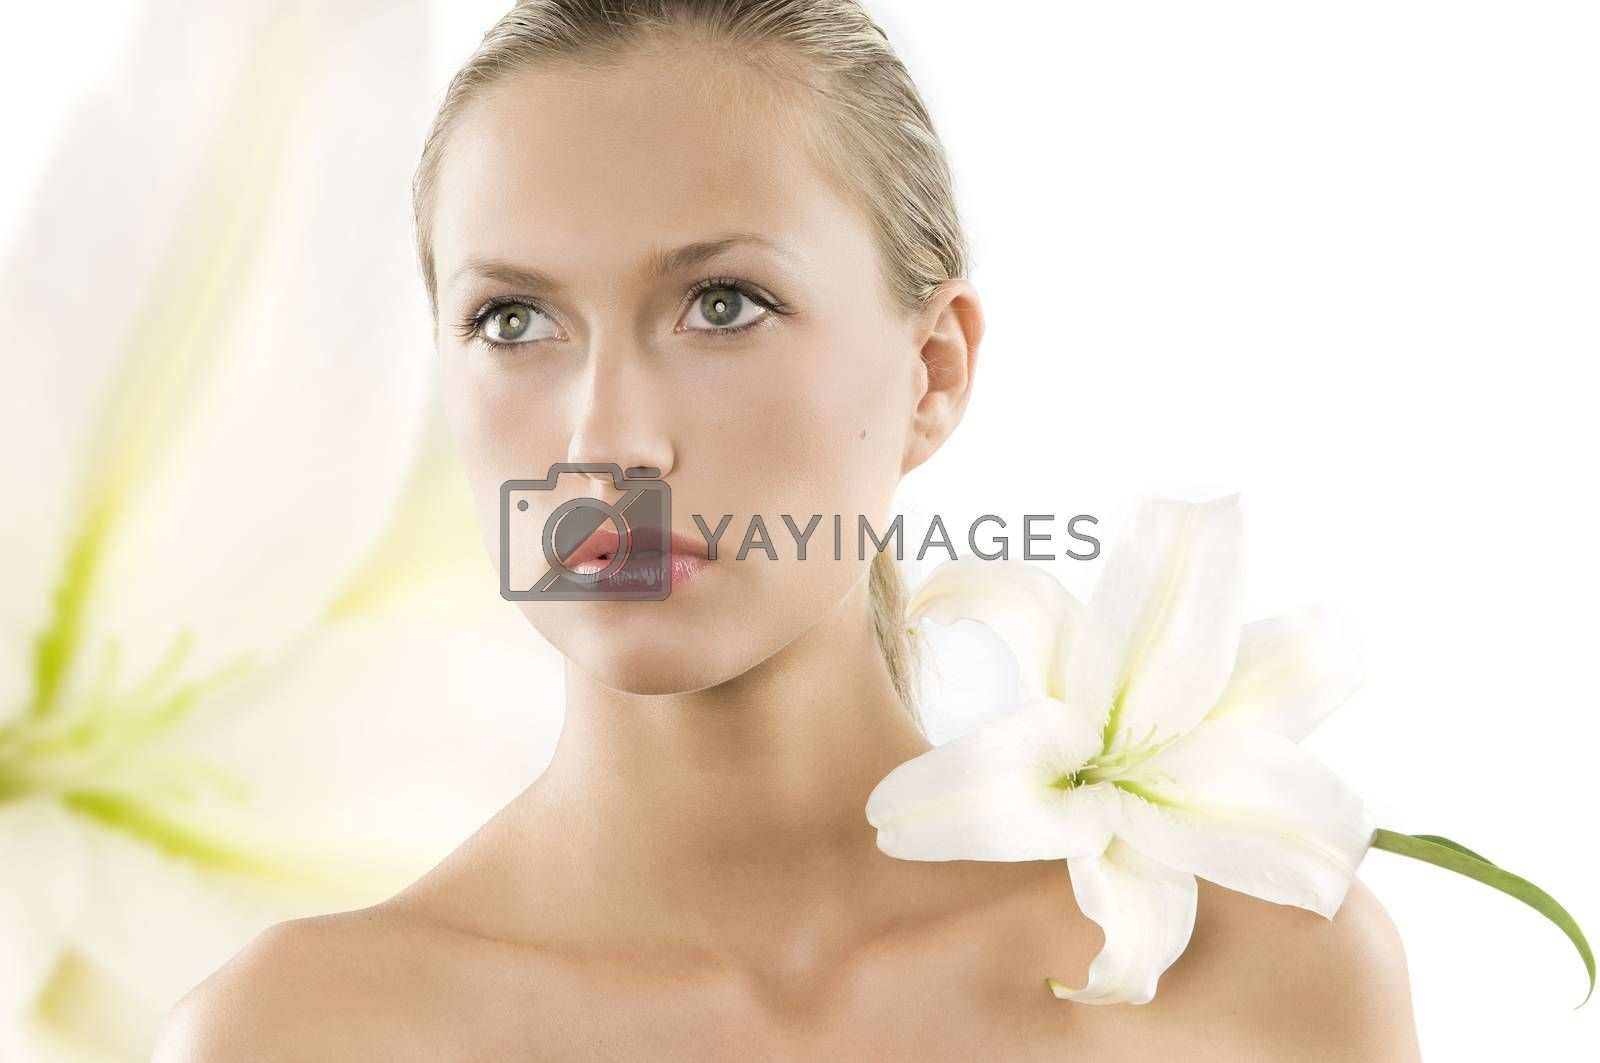 Royalty free image of white lilly by fotoCD